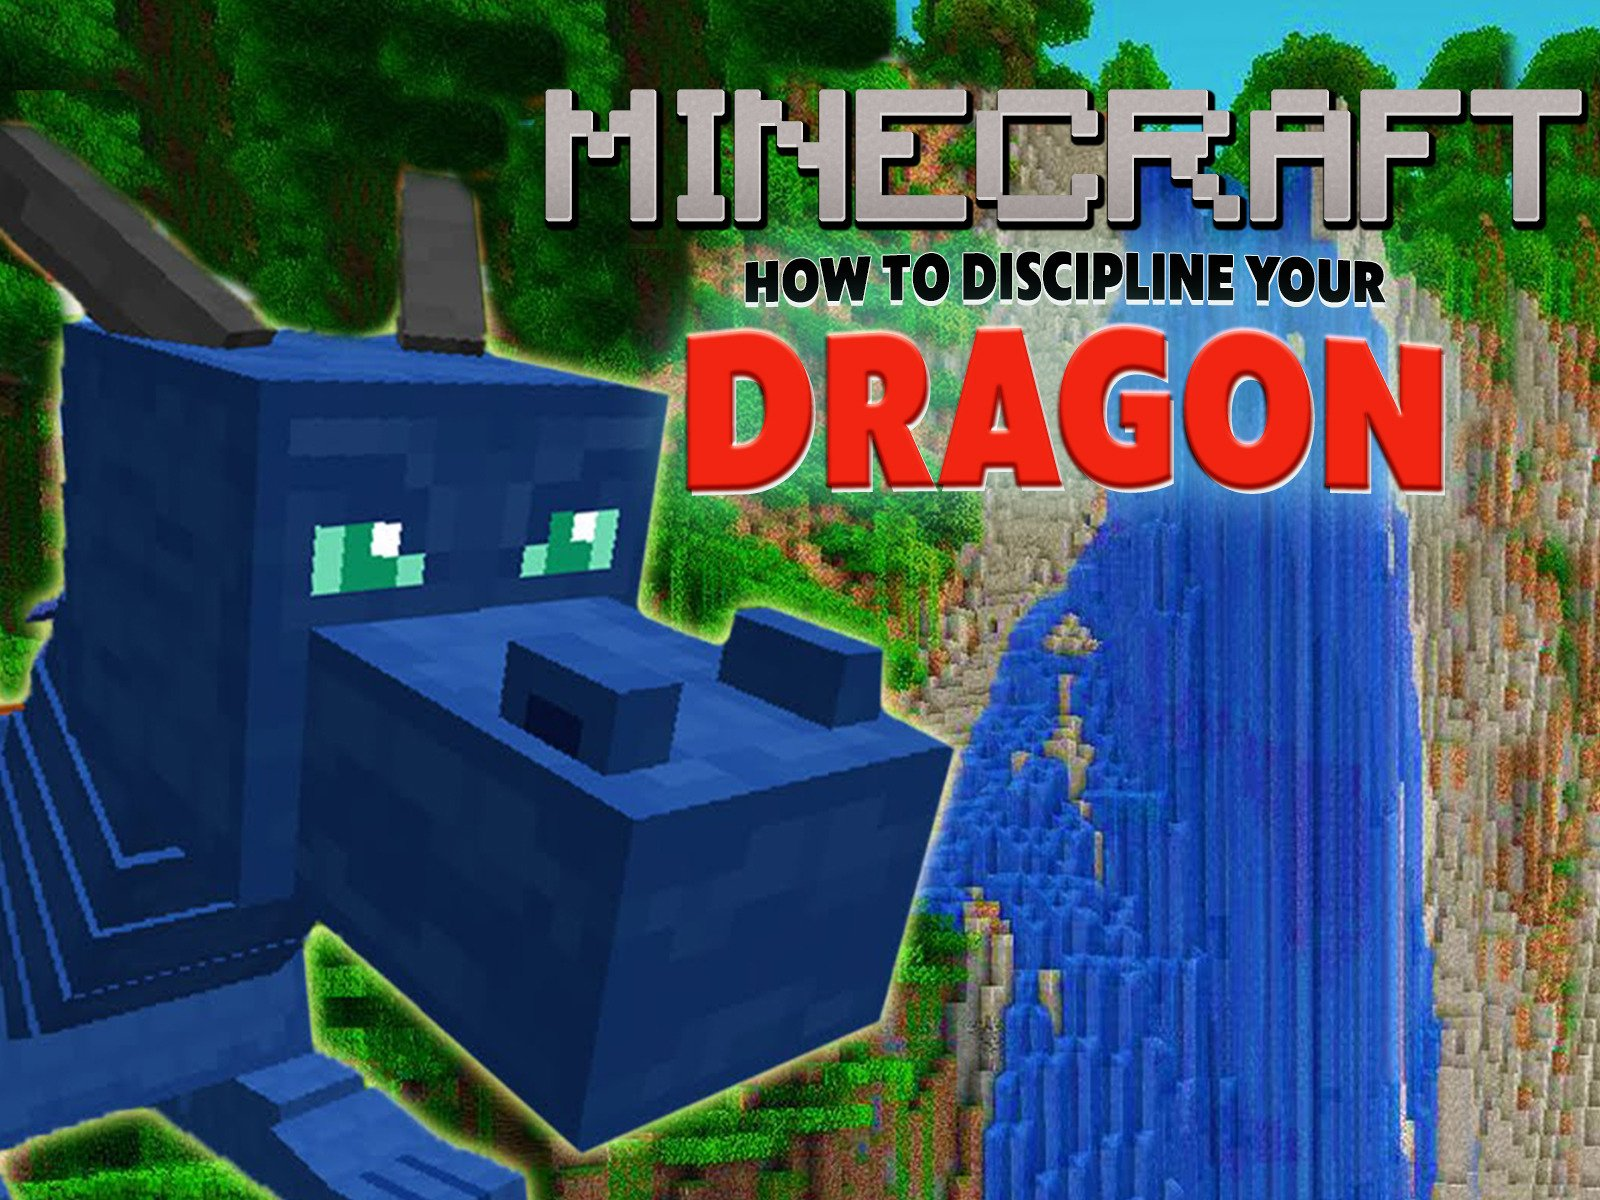 How to Discipline Your Dragon